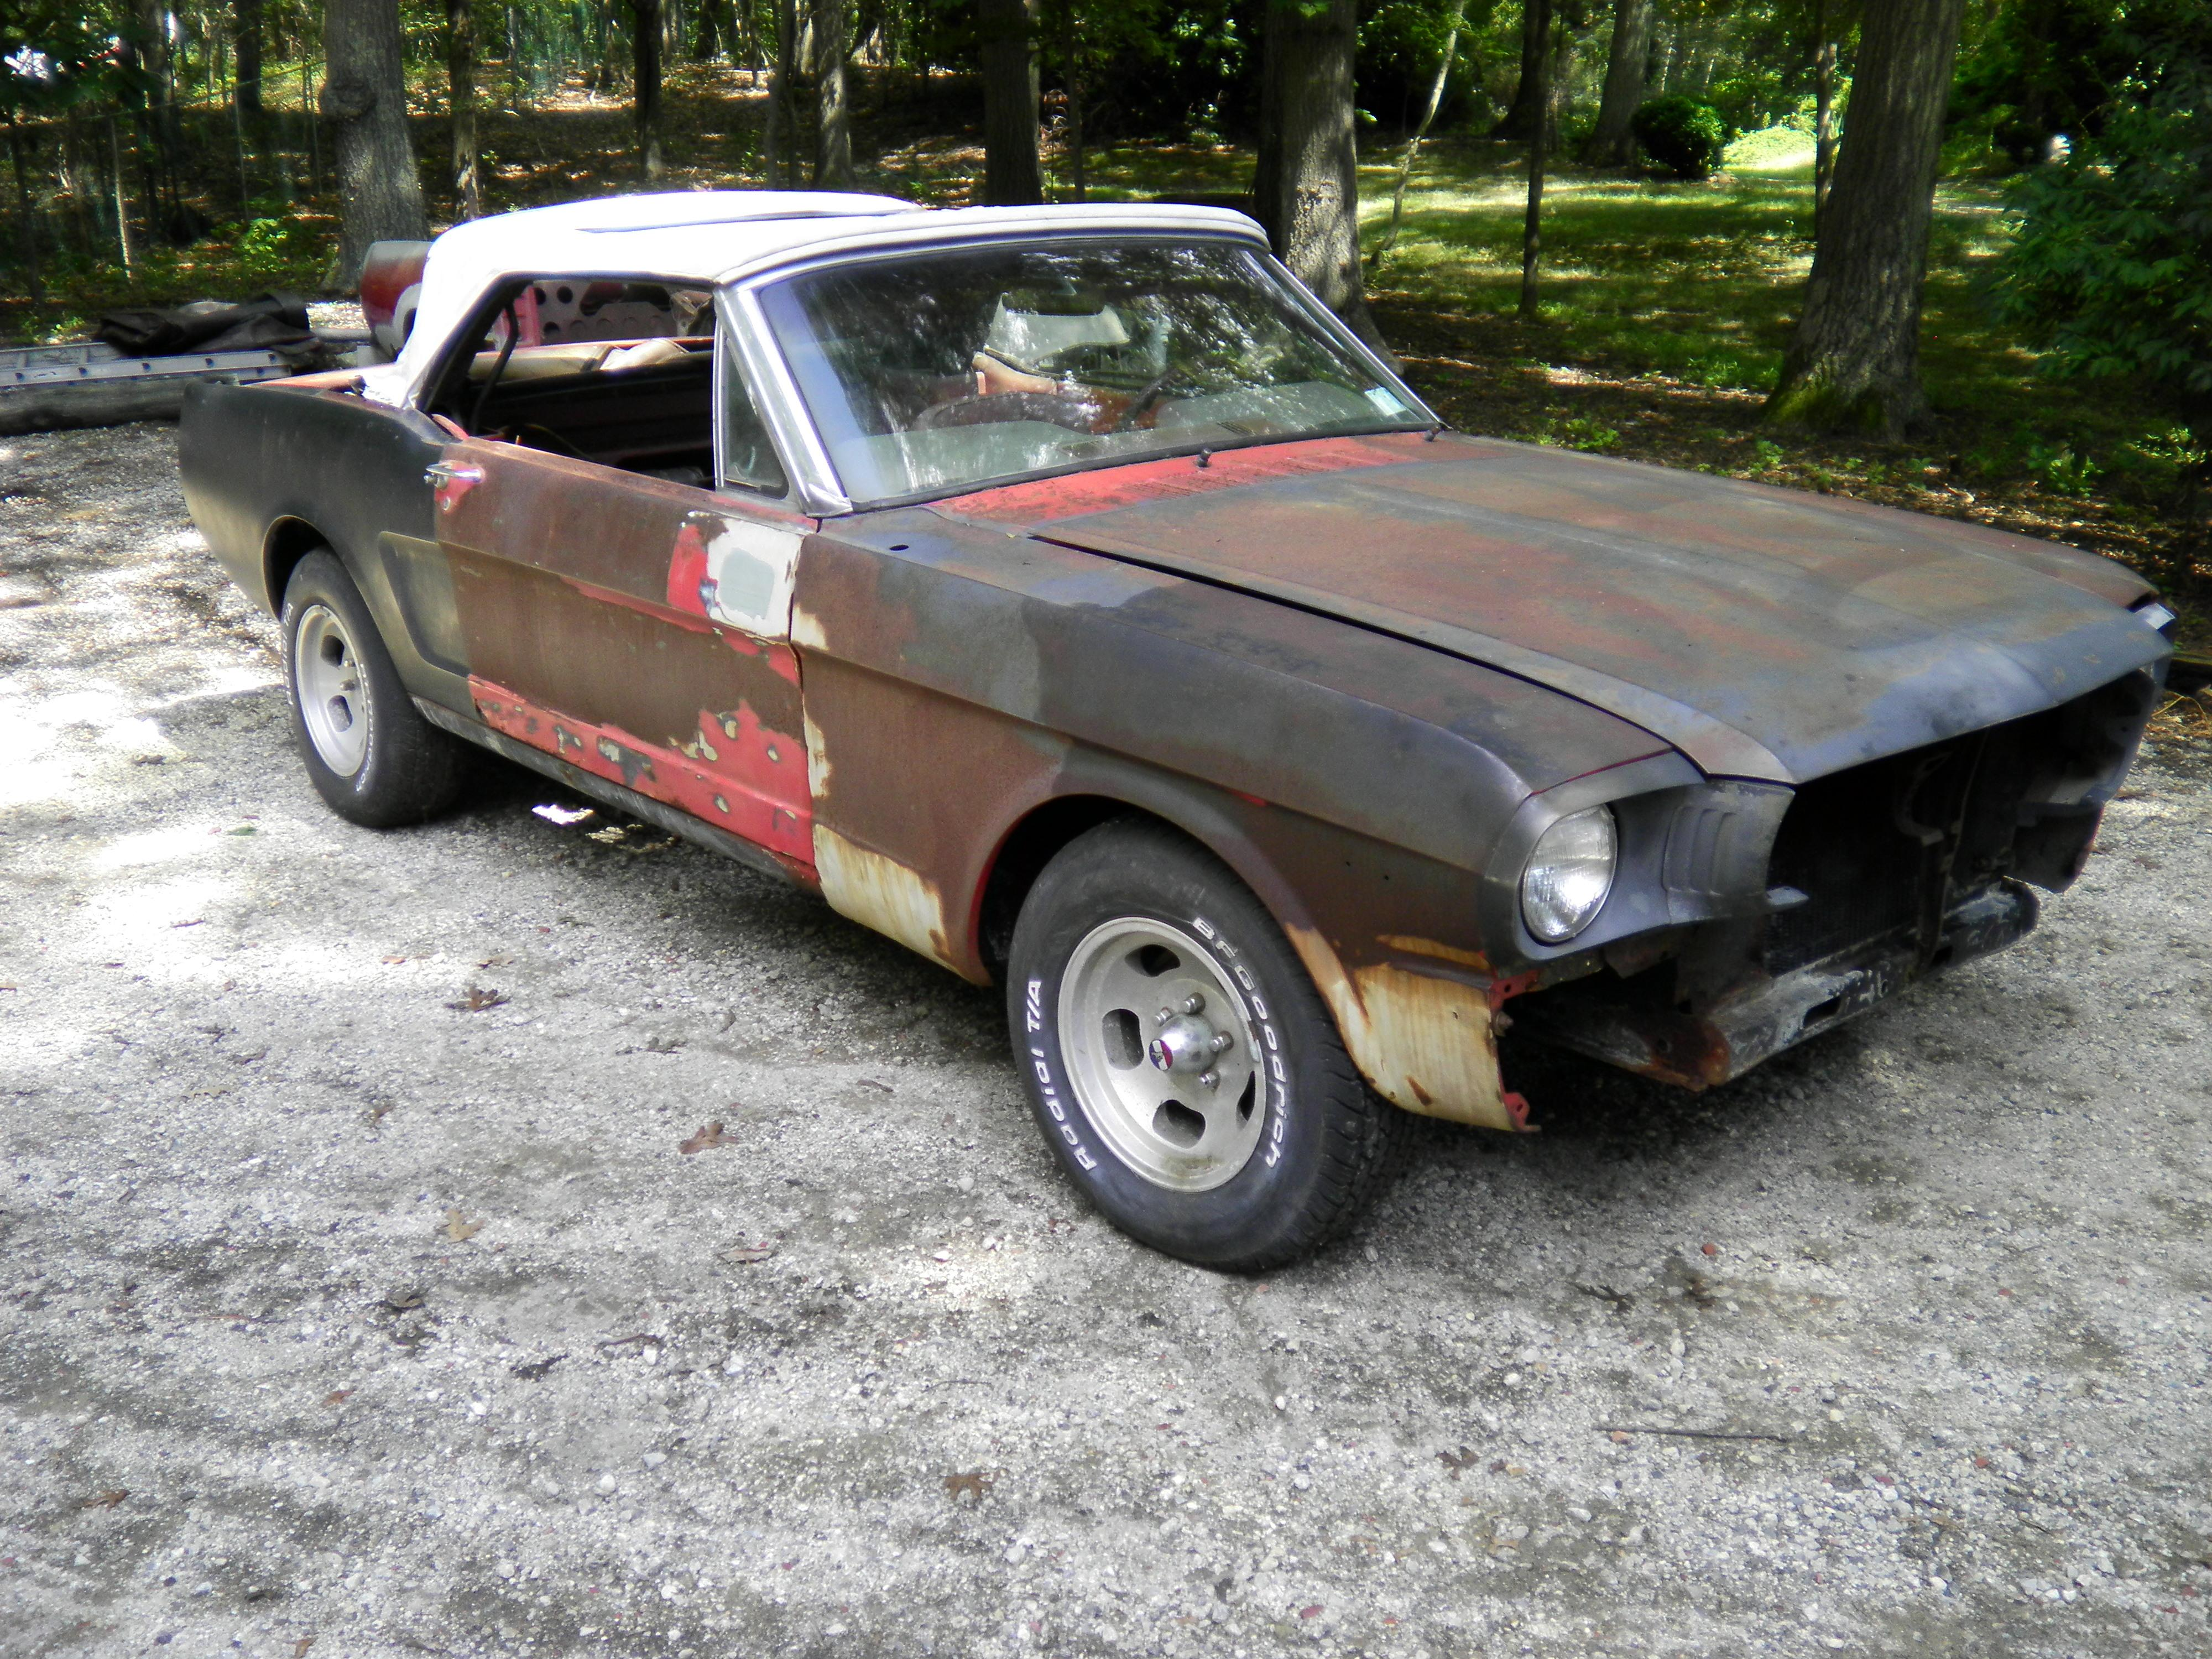 71steed 1969 ford mustang